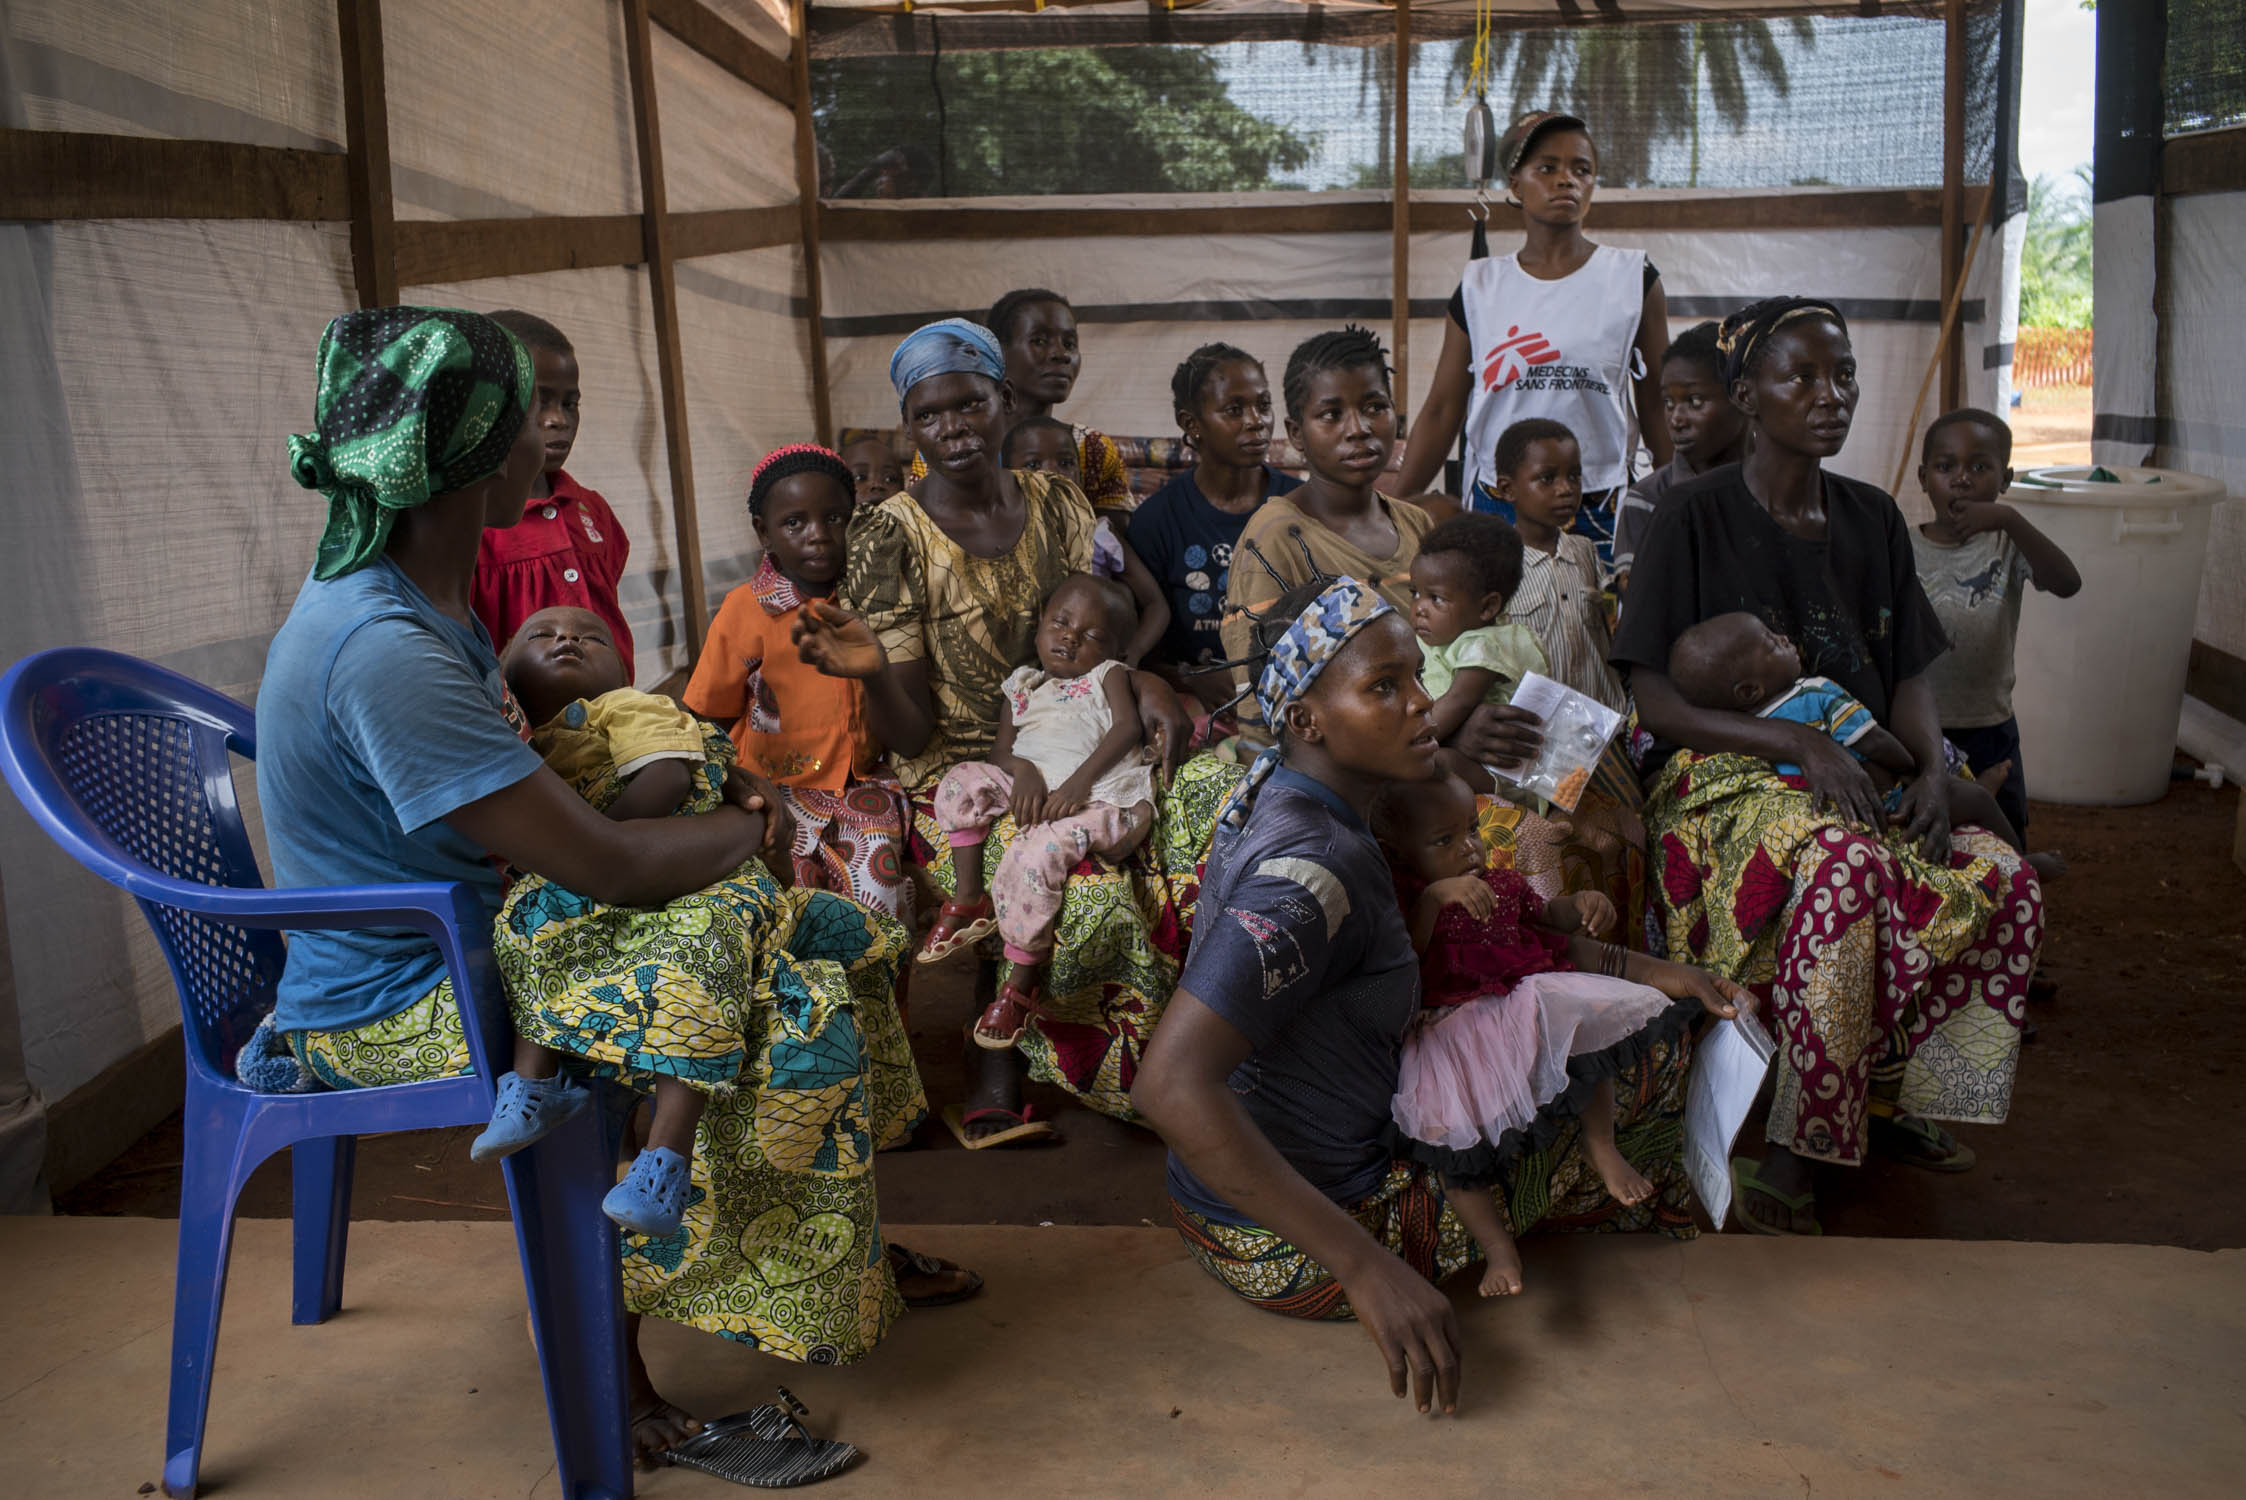 Mothers hold their sick children in the crowded waiting room of the MSF wing at a hospital in Monga, a town in a remote northern region of Democratic Republic of the Congo. MSF arrived to the area in response to a measles epidemic, therefore, only children with a fever were referred to the MSF wing. Monga, Bas-Uele province, Democratic Republic of the Congo. May 26, 2016